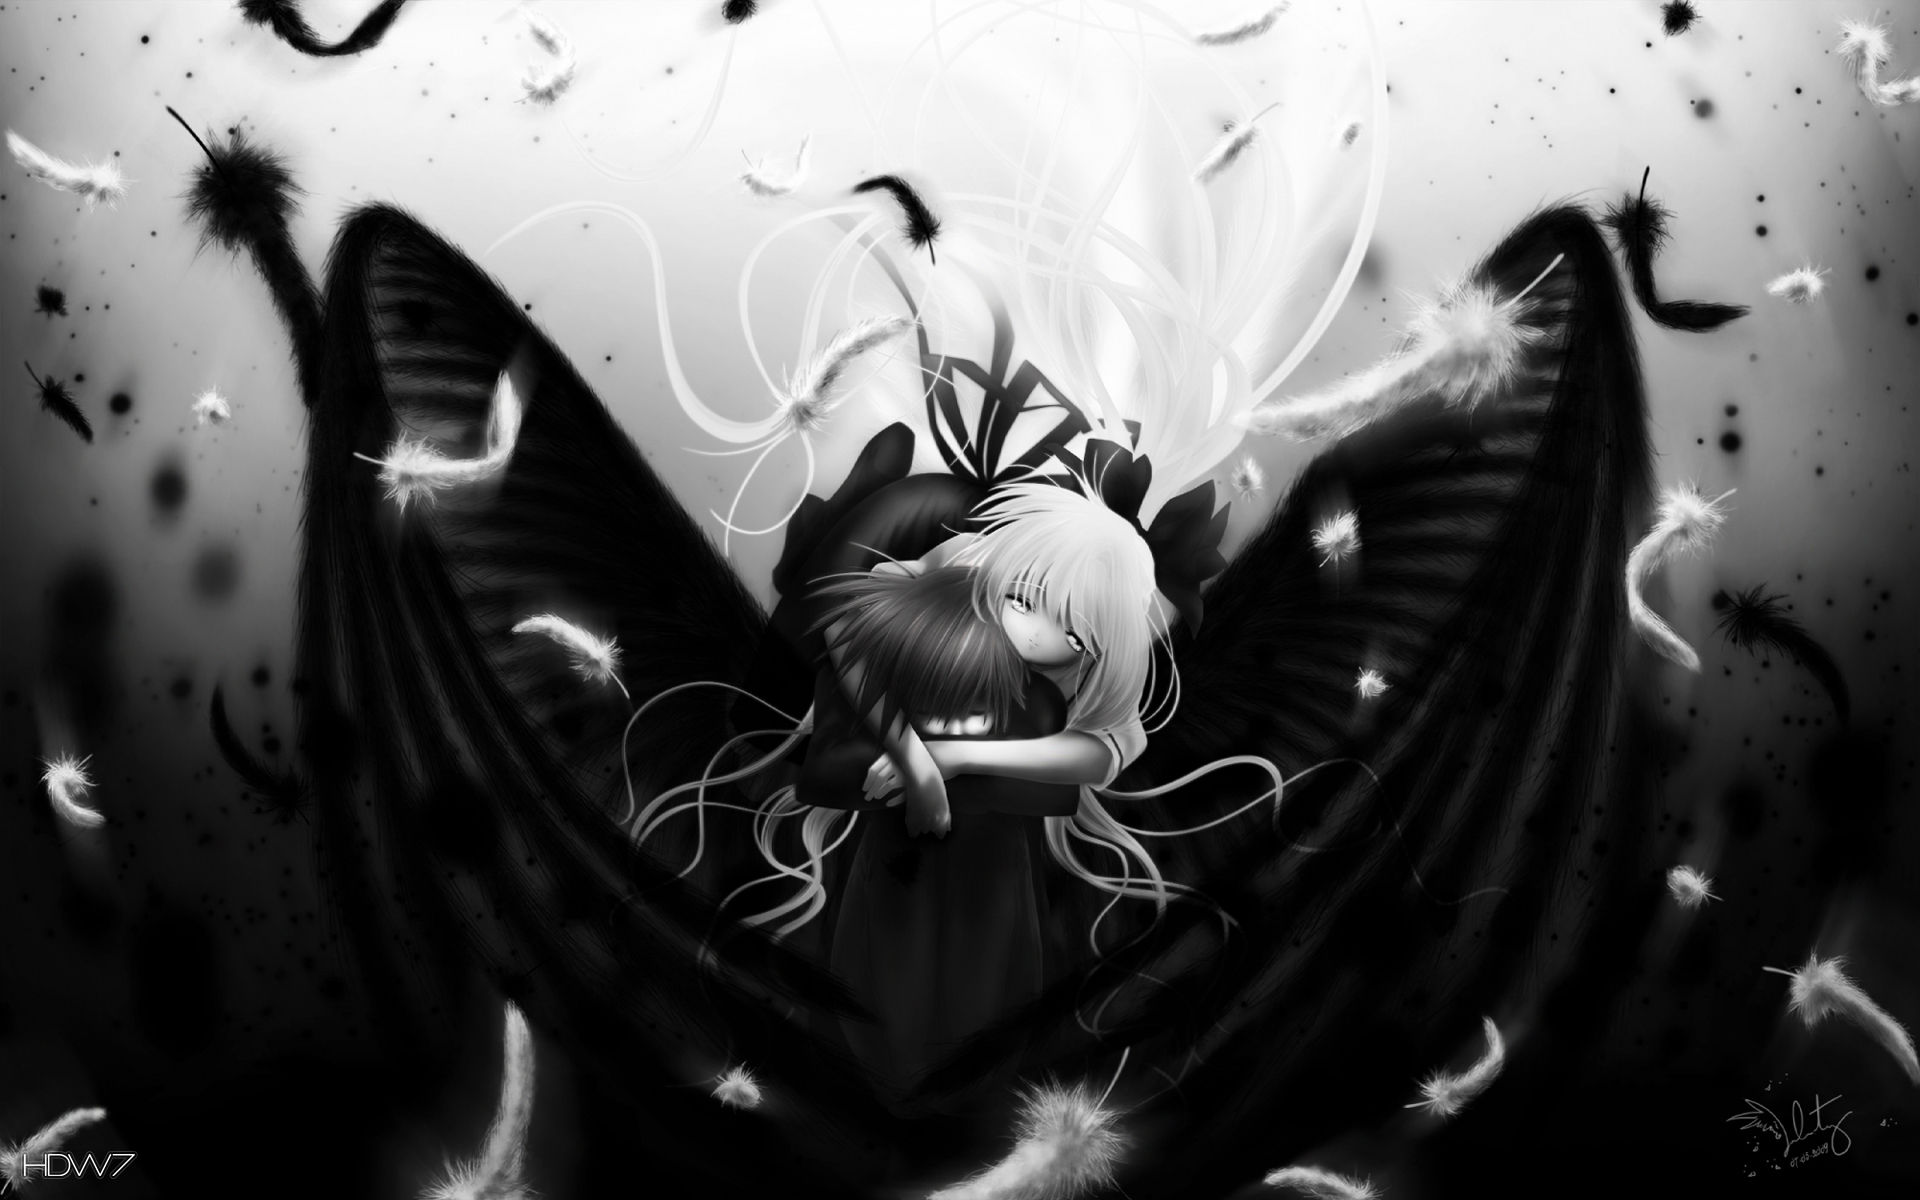 Anime Girl In Black And White Wallpaper Hd Wallpaper Gallery 366